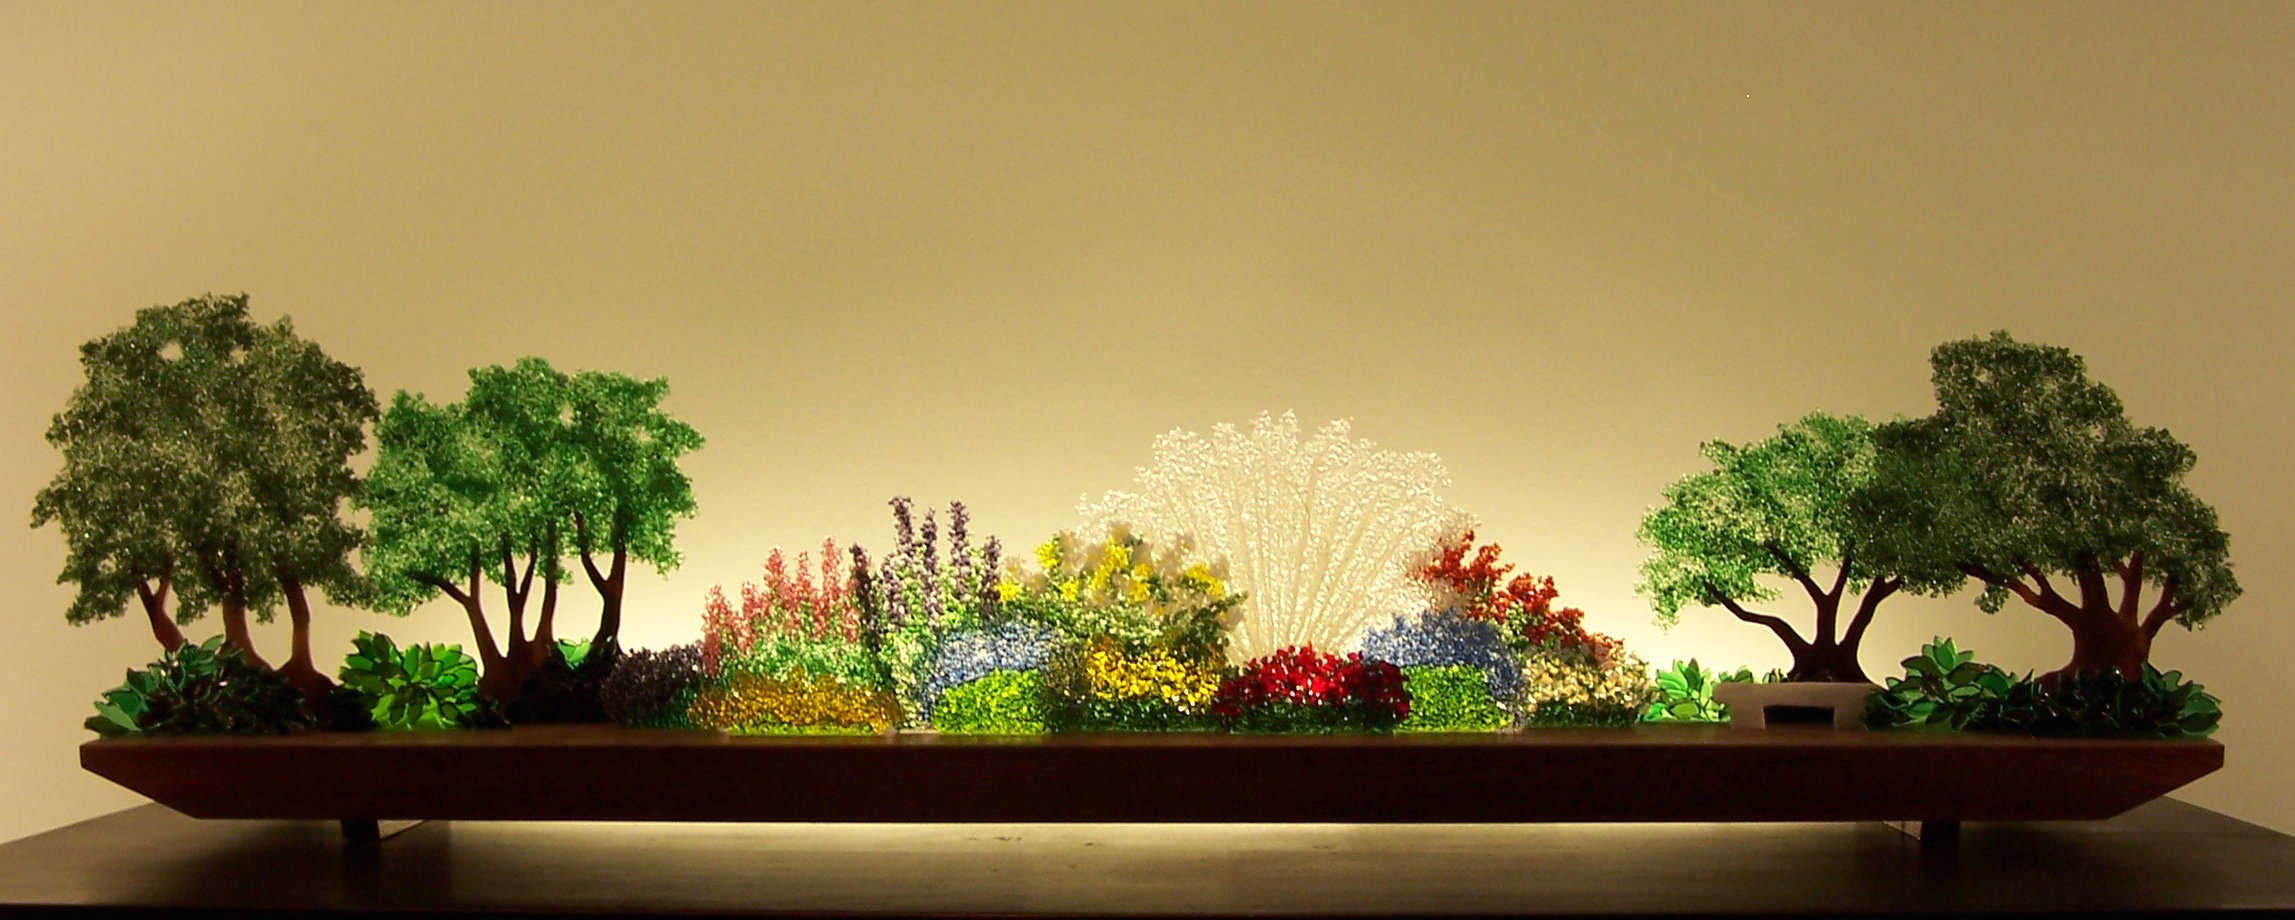 Artful Home Perennial Hush By Bernie Huebner And Lucie Boucher Art Glass